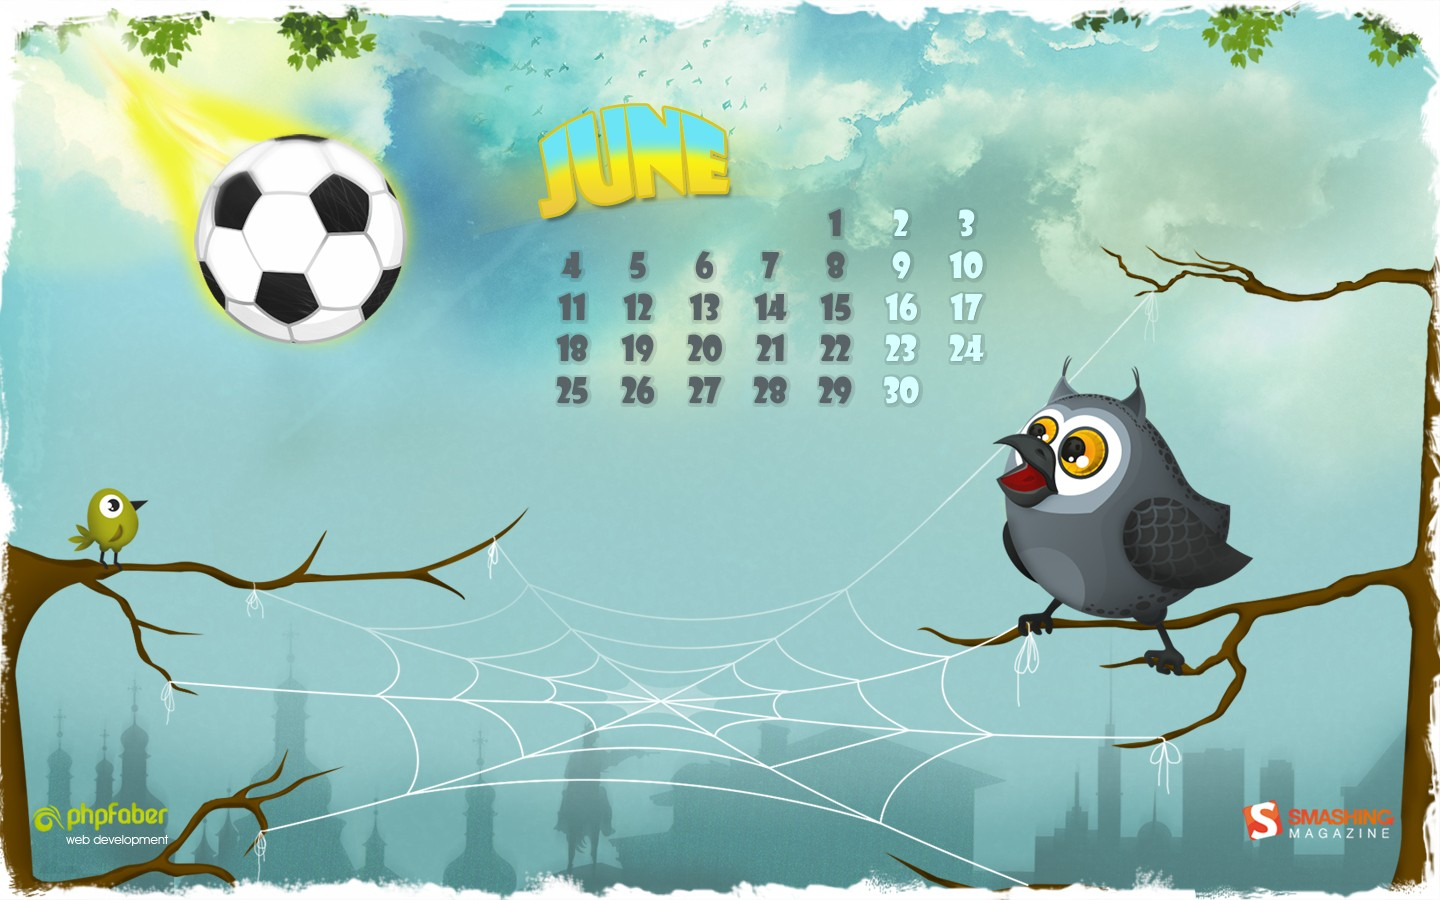 In January Calendar Wallpaper 31430